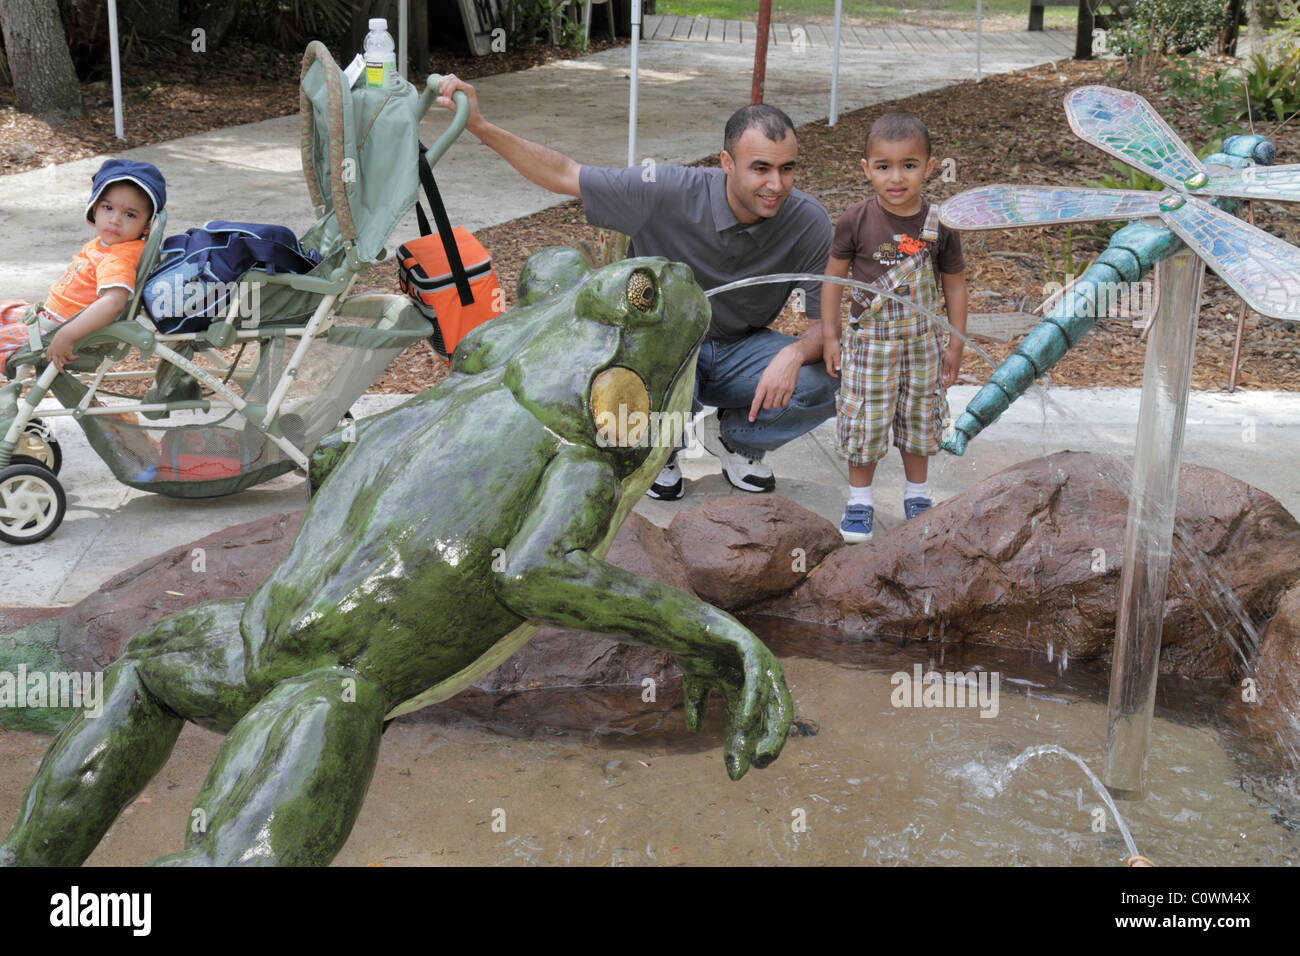 Orlando Florida Sanford Central Florida Zoo & and Botanical Gardens Middle Eastern man boy son family water - Stock Image